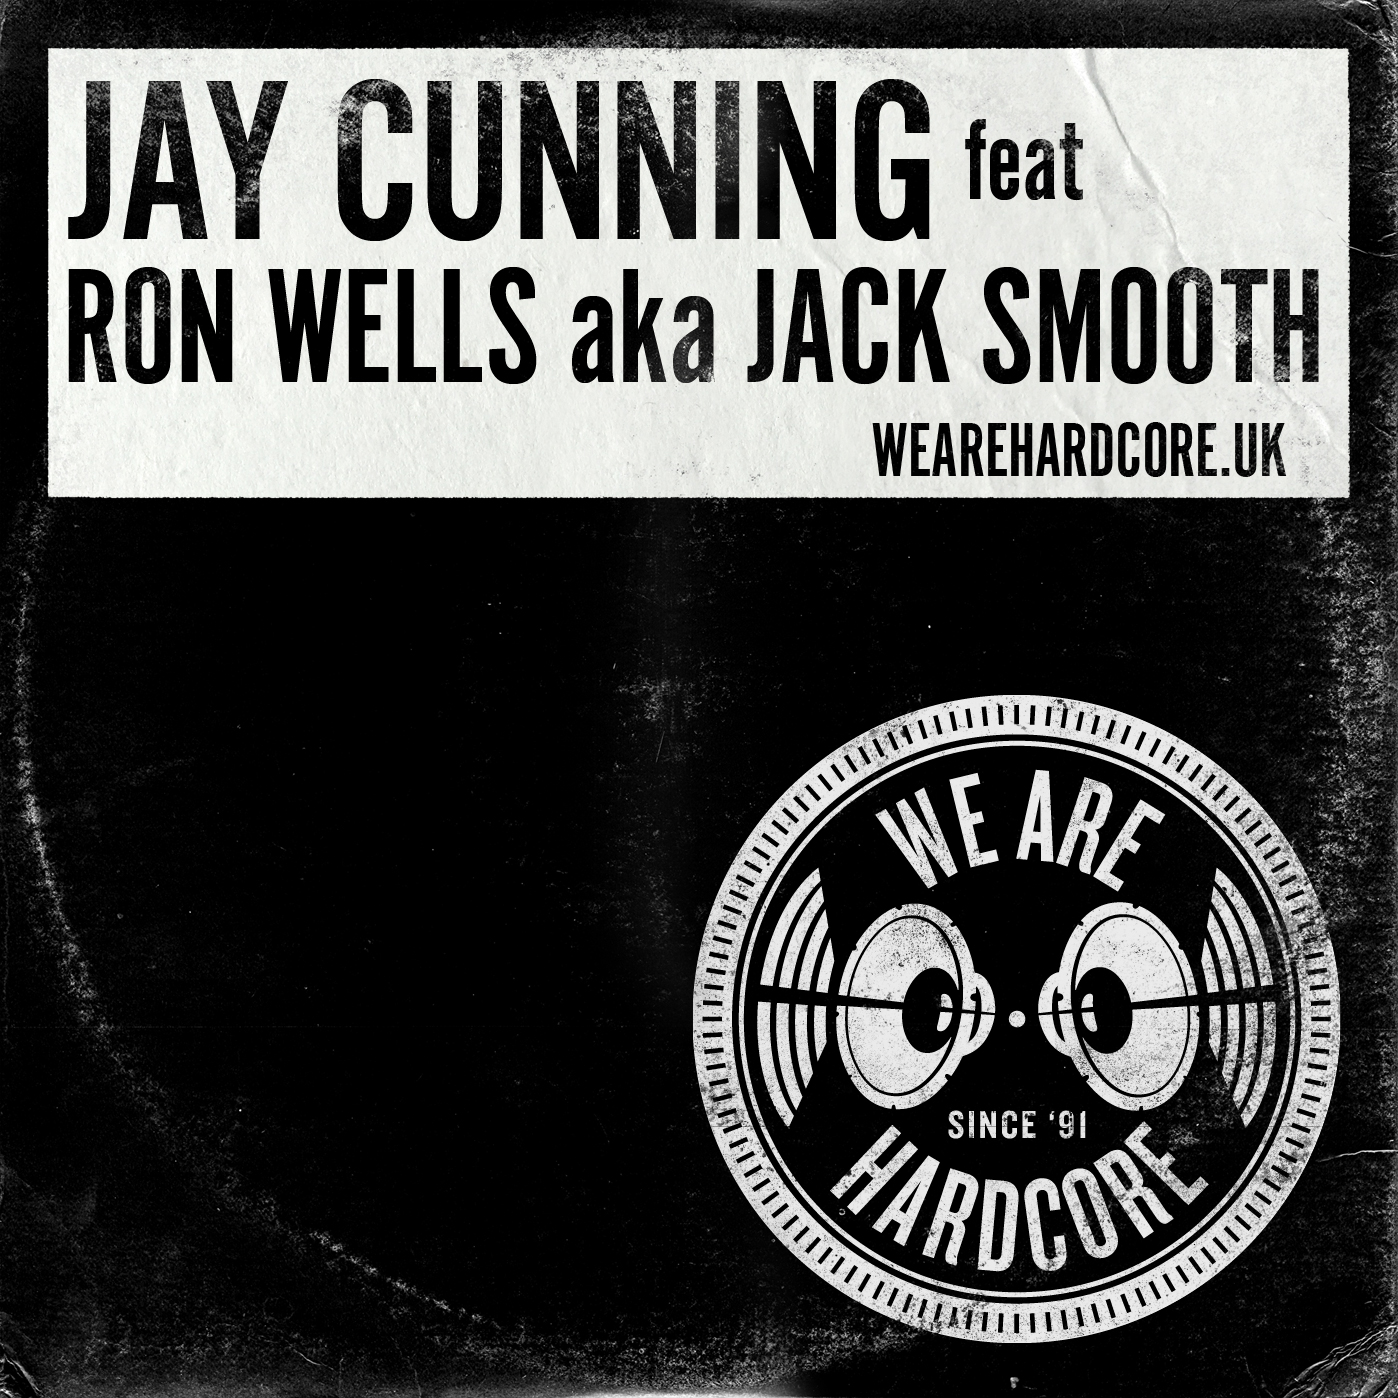 Jungle Techno pioneer Ron Well PKA Jack Smooth - Jay Cunning WE ARE HARDCORE show